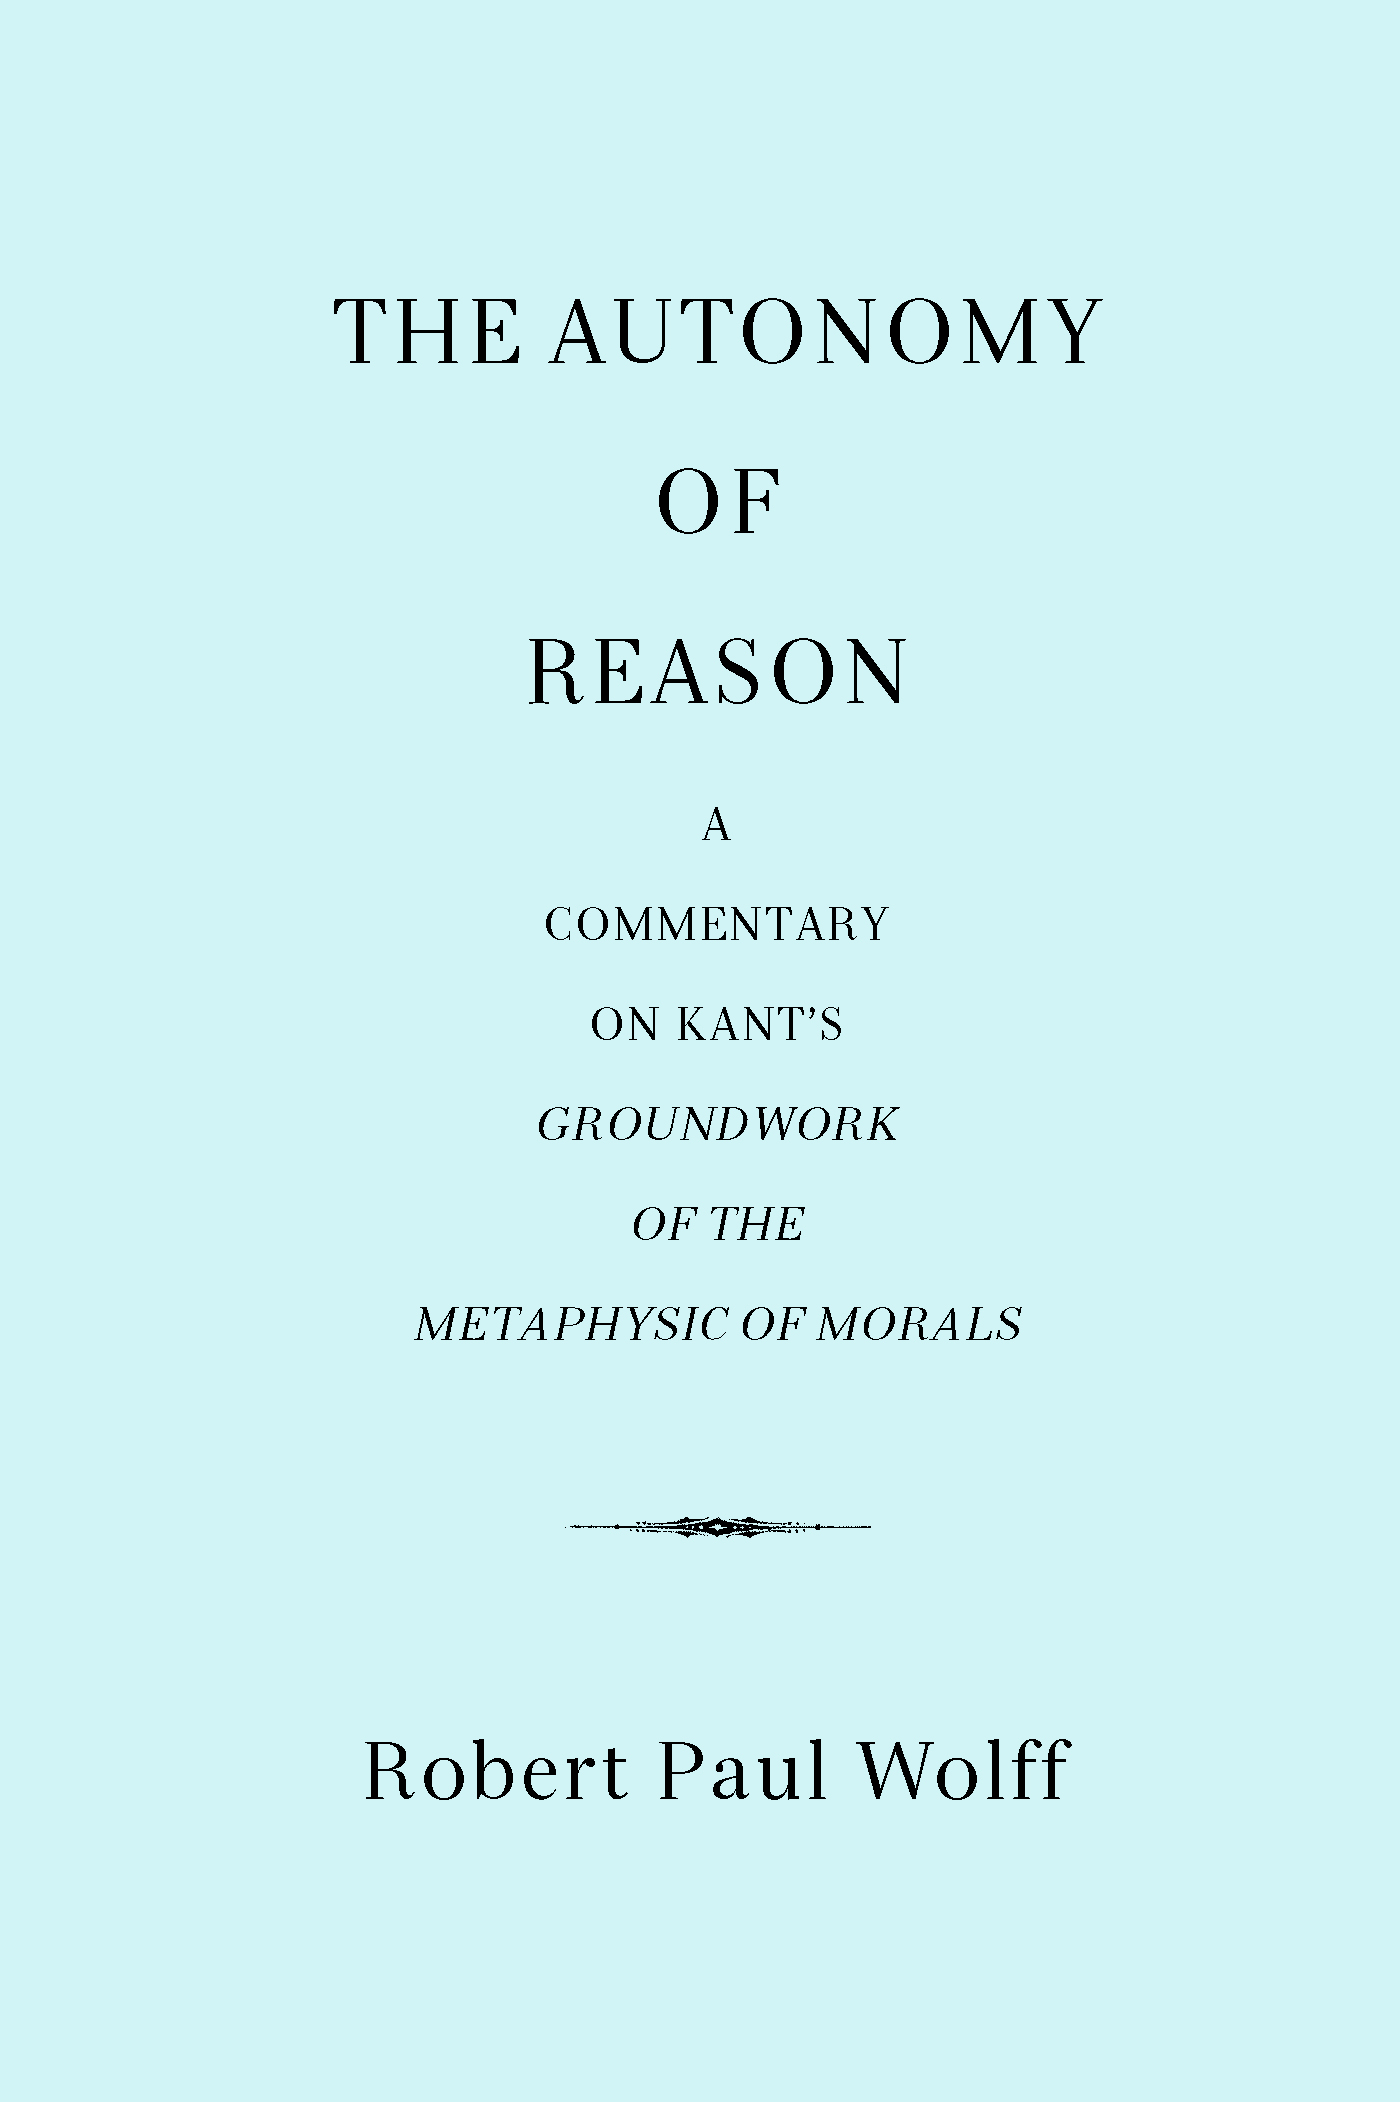 Robert Paul Wolff - The Autonomy of Reason